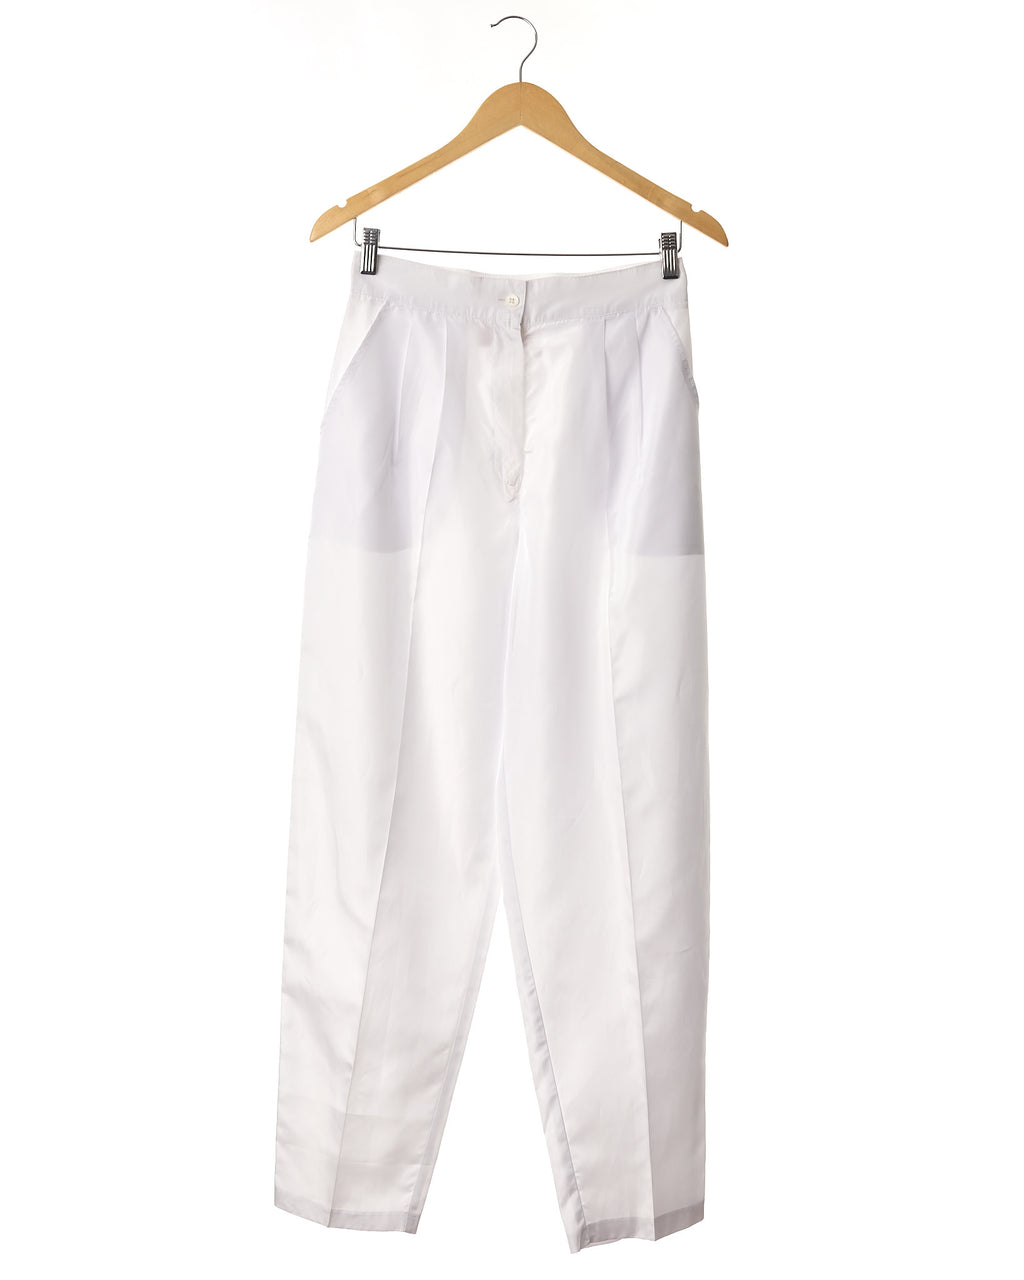 Pearl Shine Vintage Trousers